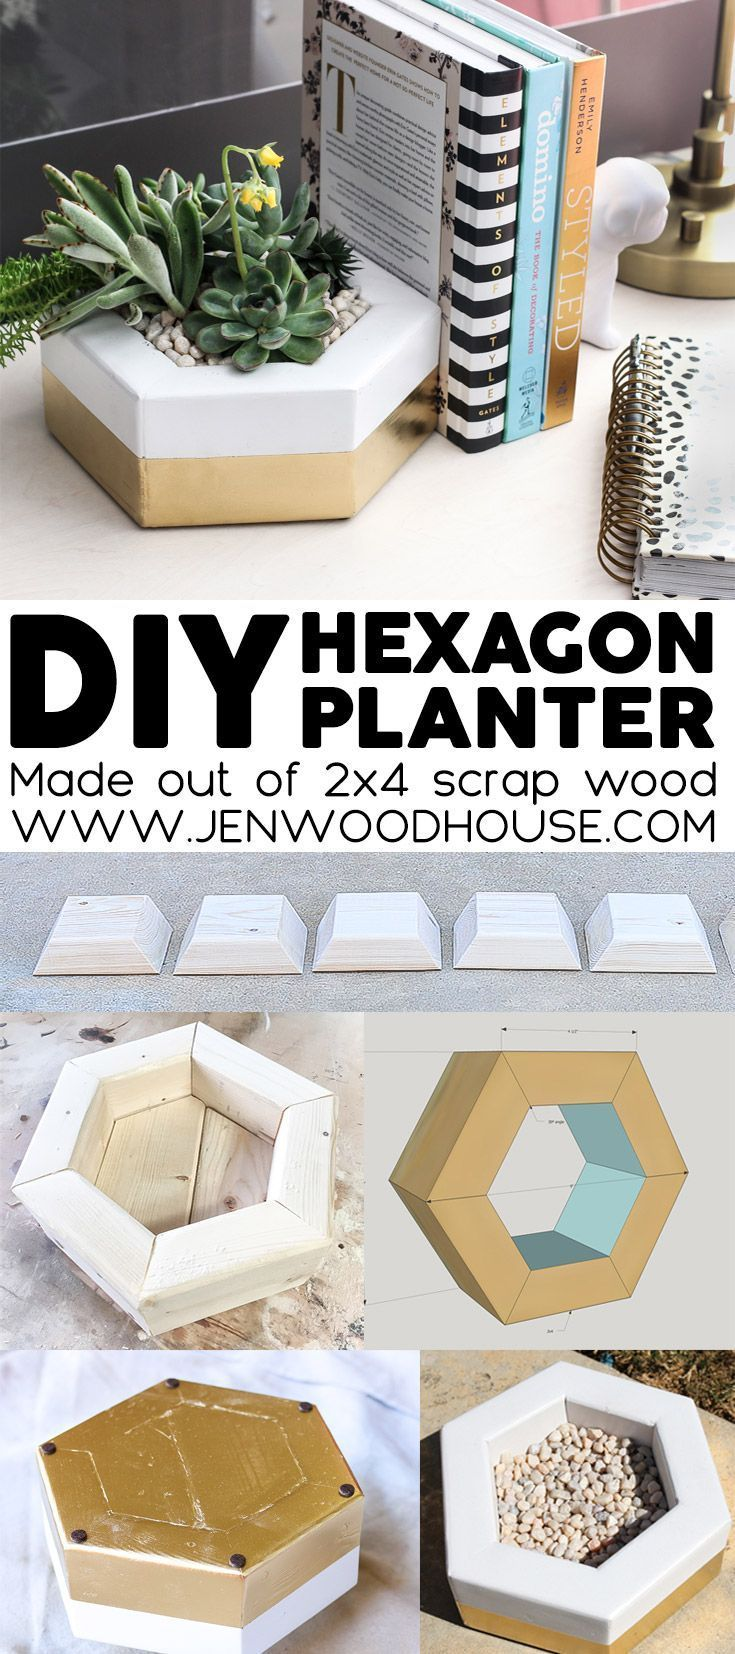 How to make a DIY hexagon planter out of 2x4 scrap wood   www.jenwoodhouse.com